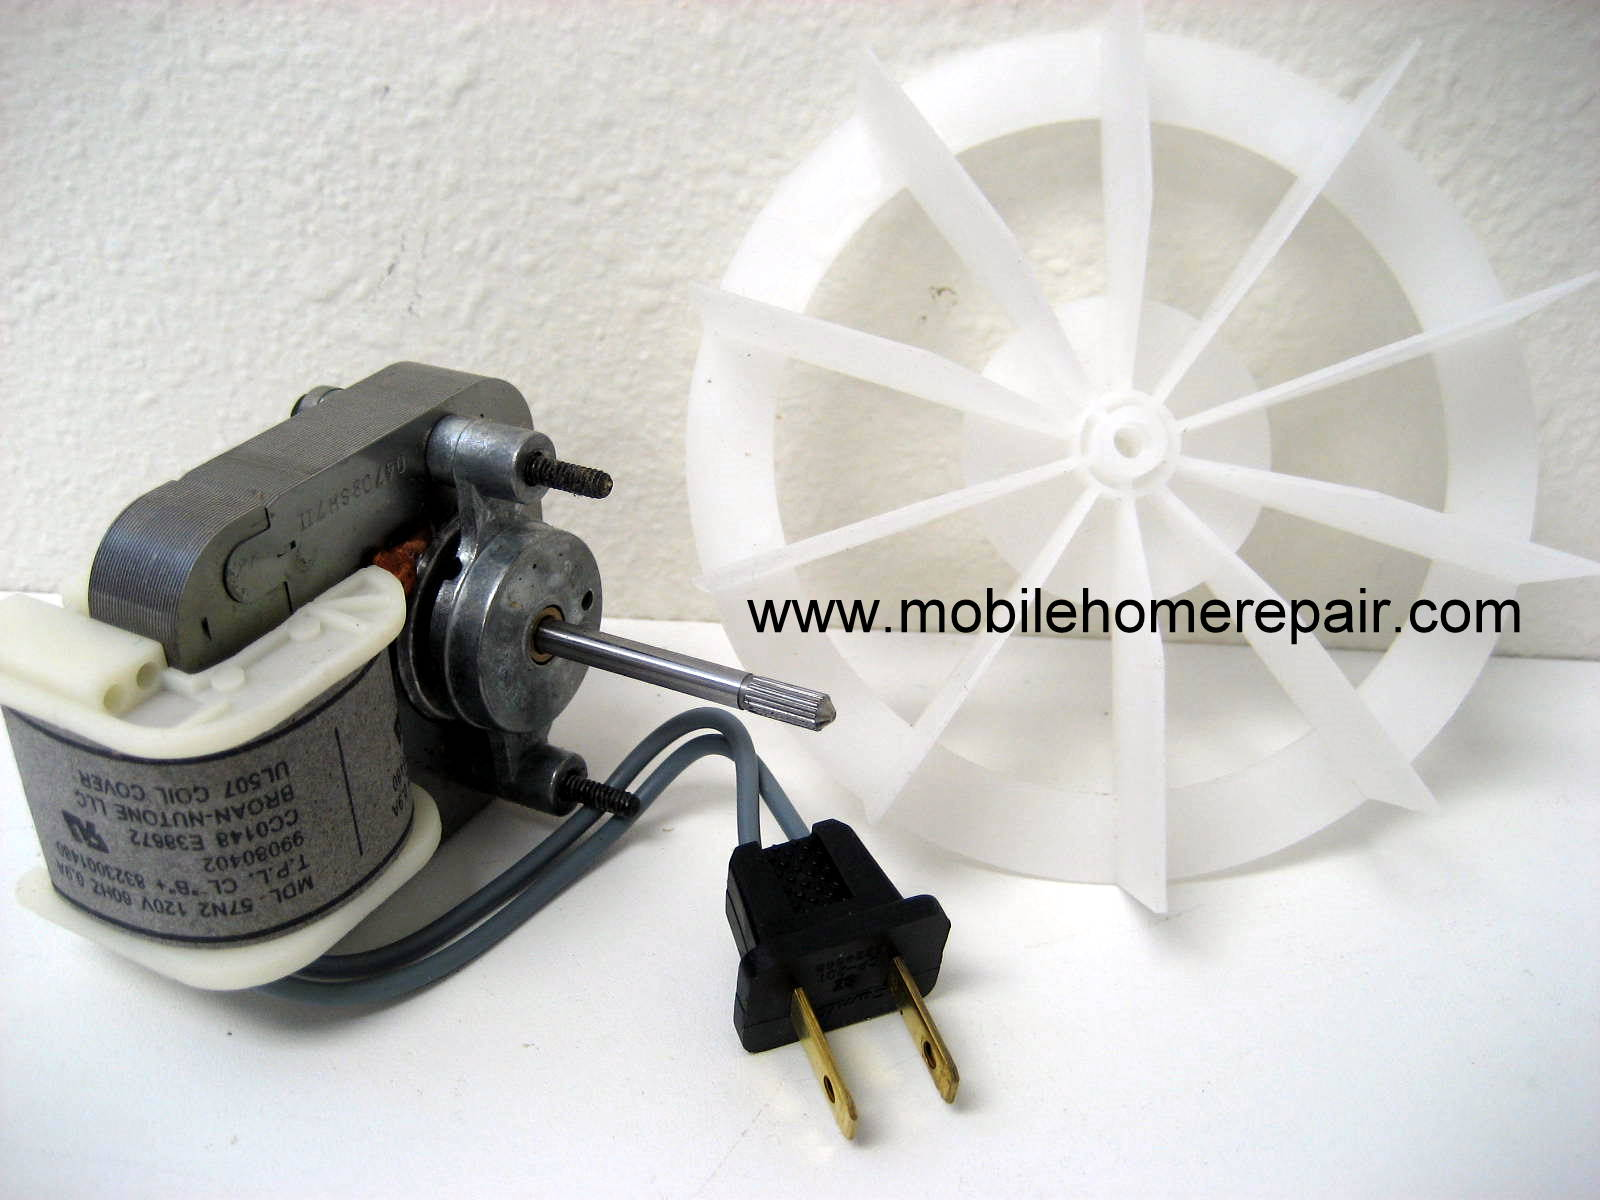 120V bathroom fan motor kit with 2 prong plug.